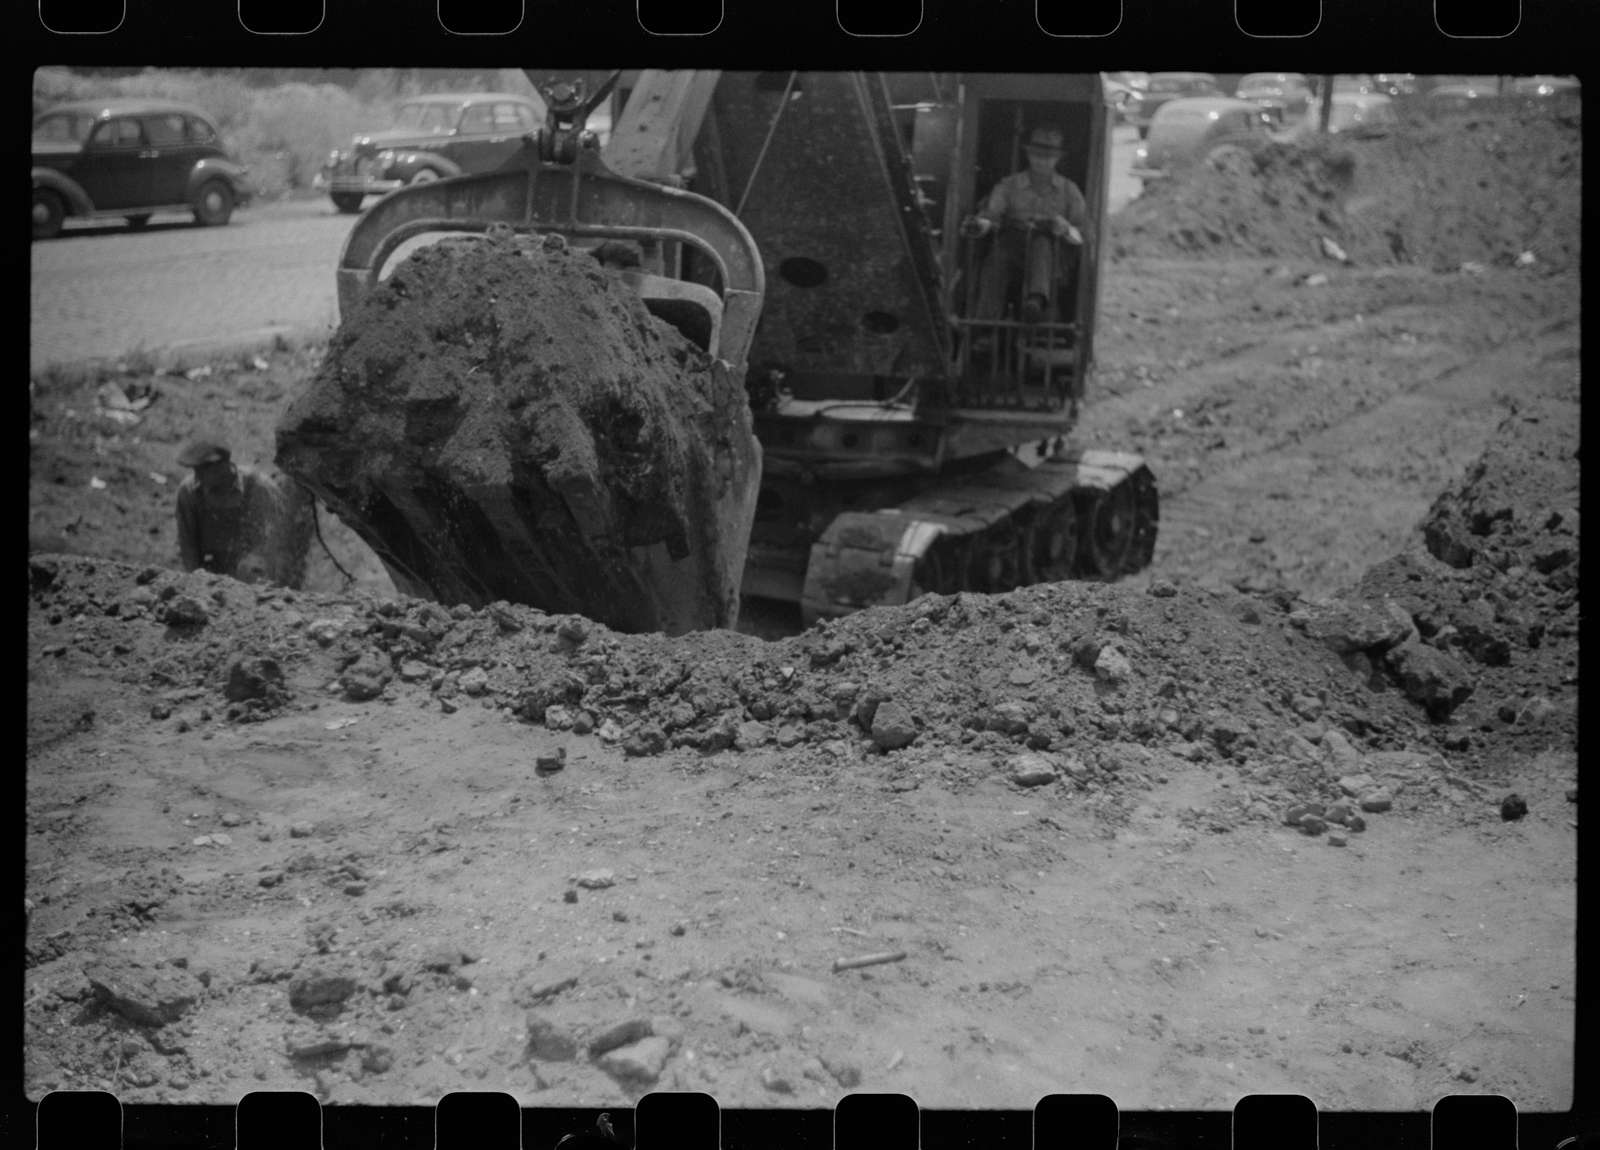 Untitled photo, possibly related to: Steam shovel loading truck, Chicago, Illinois